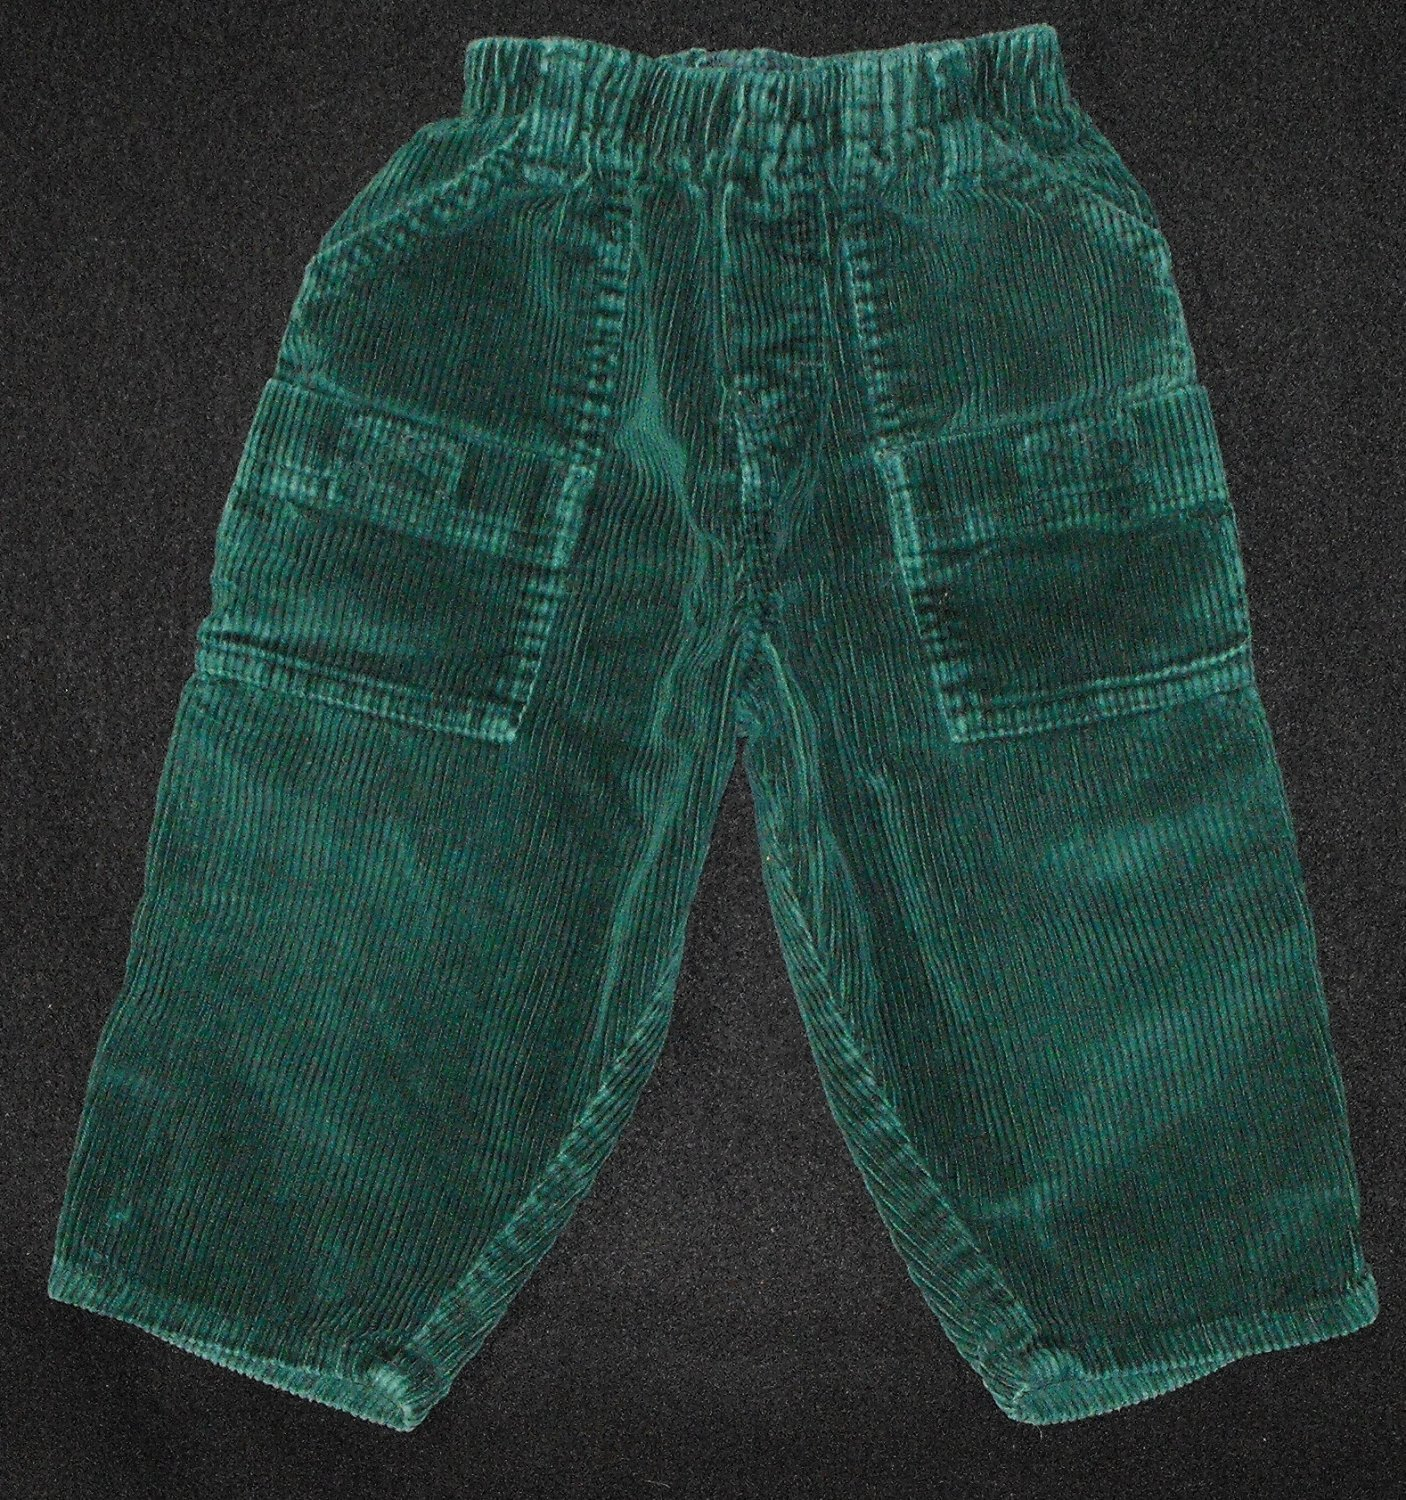 Osh Kosh  Baby Boys 18-24 Months Forest Green Cords Pants